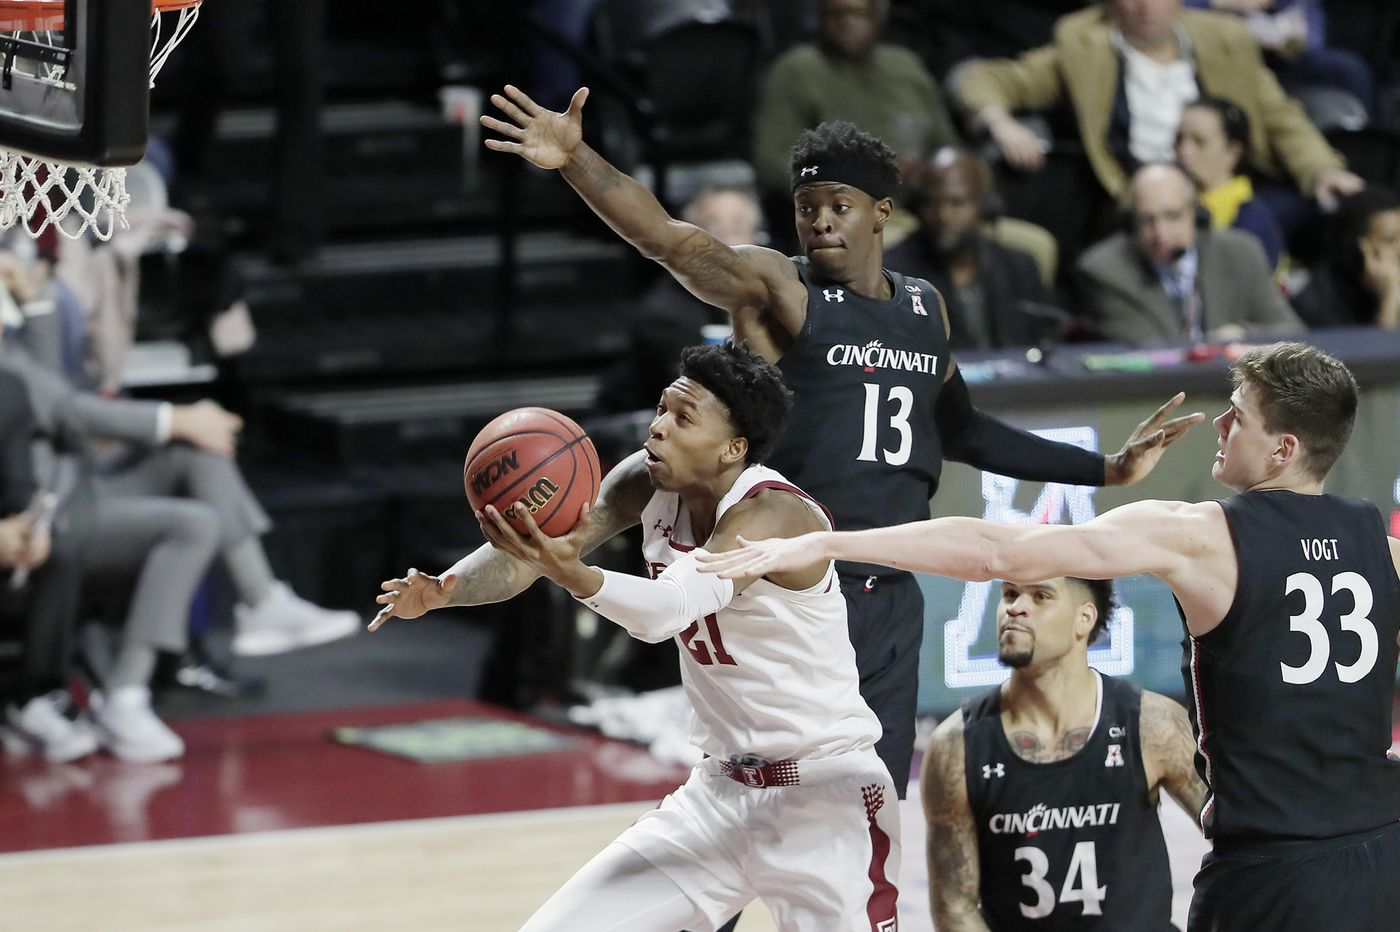 Cincinnati 89, Temple 82: Highlights, Stats, and reaction from Owls' loss